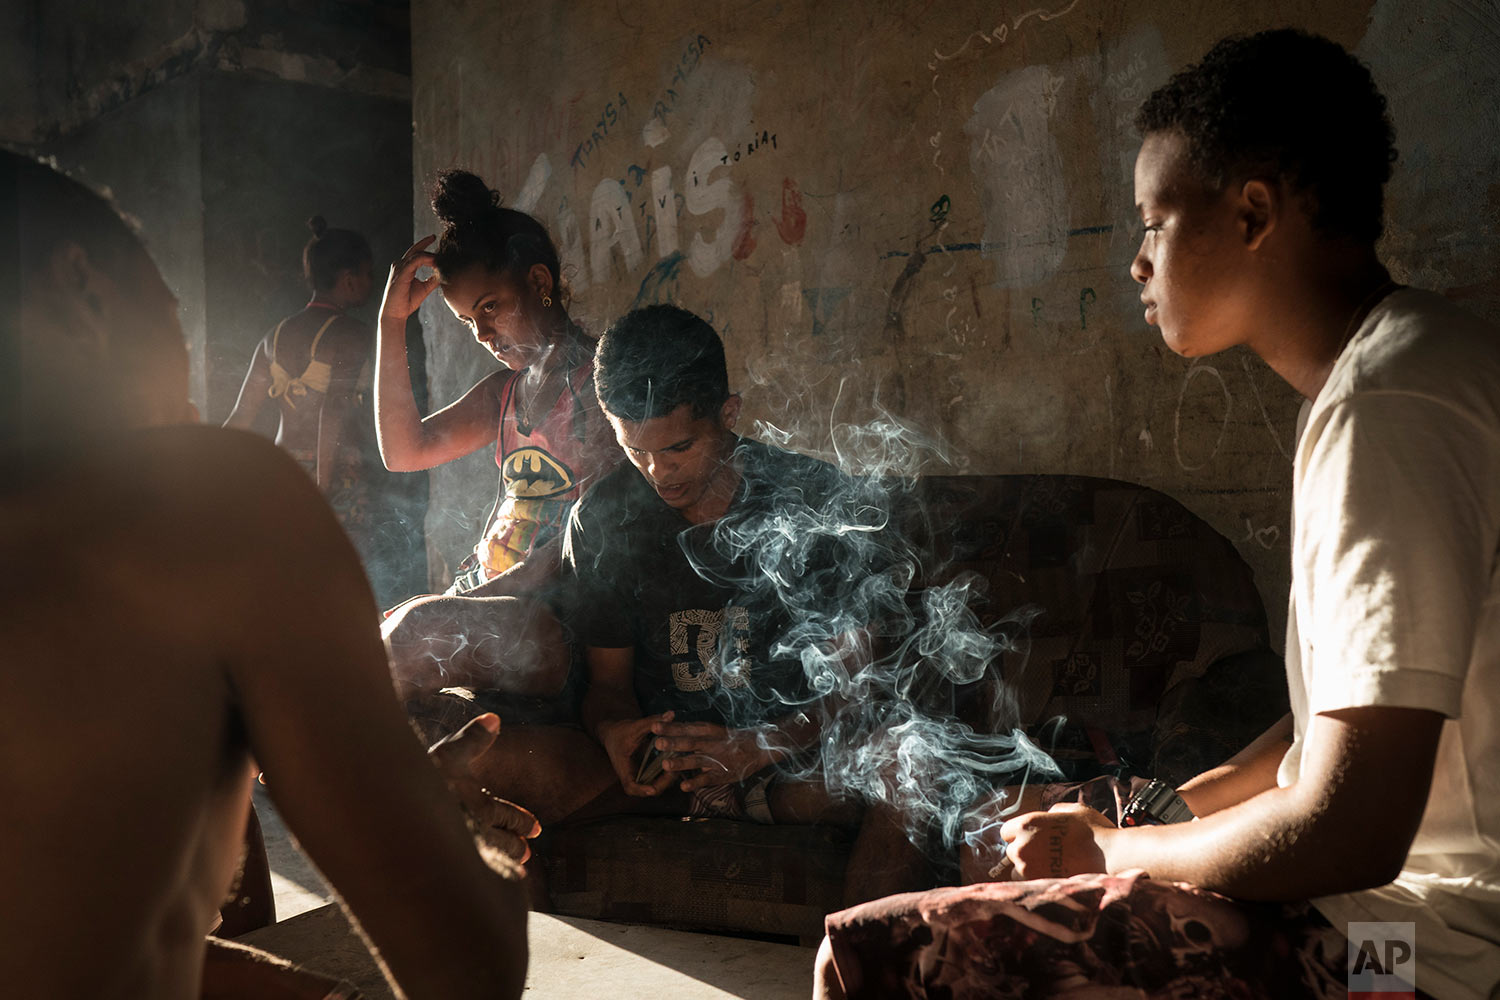 Jayanne Pessanha, right, smokes a cigarette while playing cards with her neighbors in the former IBGE building in Mangueira favela, Rio de Janeiro, Brazil, Saturday, Sept. 16, 2017. The deepest recession in Brazil's history and cuts to the subsidy programs is raising the specter that this continent-sized nation has lost its way in addressing wide inequalities that go back to colonial times. (AP Photo/Felipe Dana)